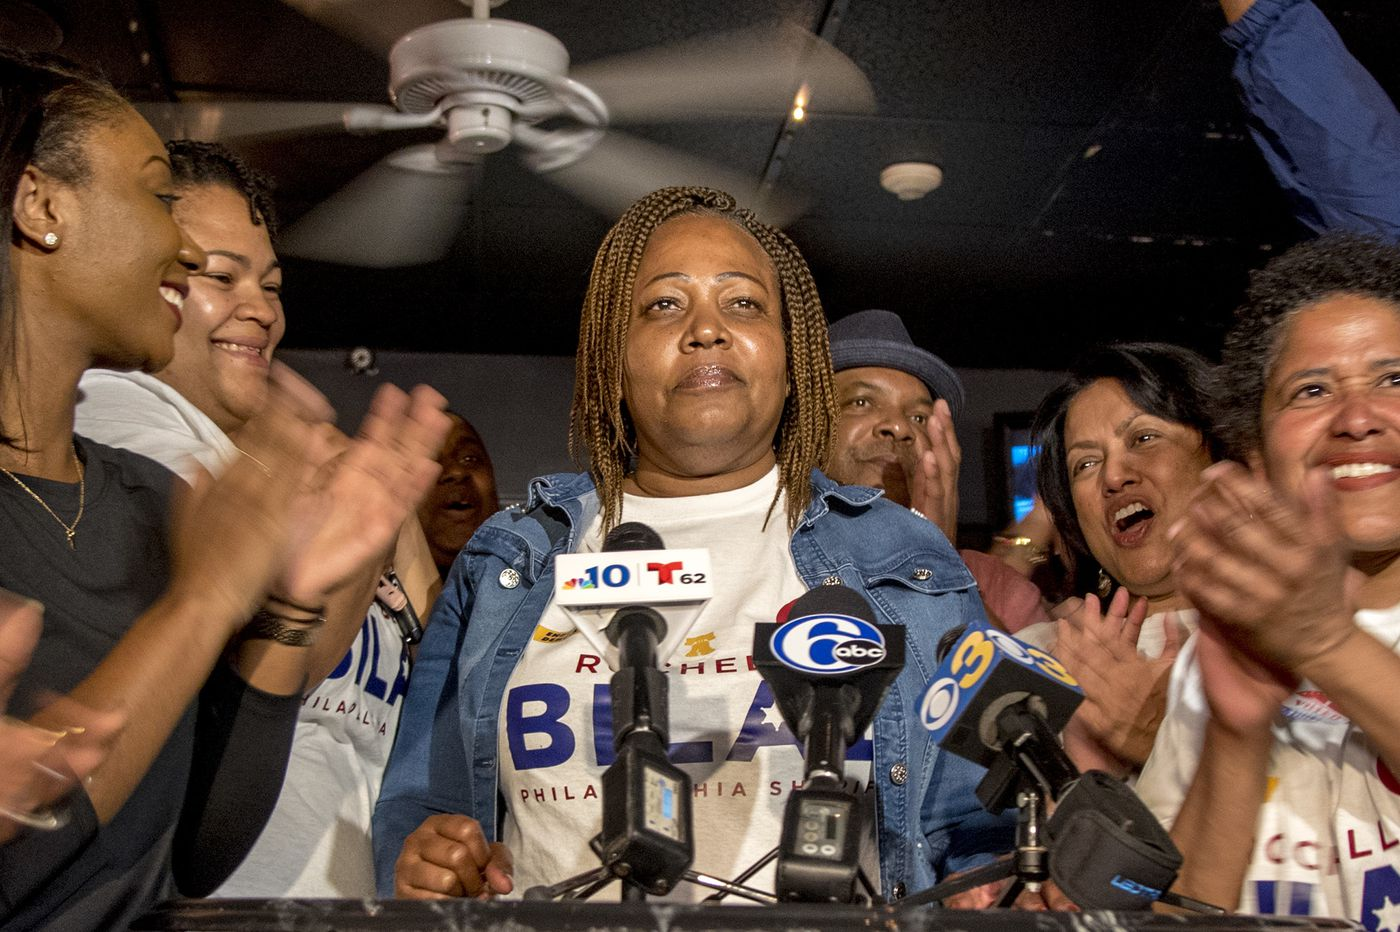 Rochelle Bilal wins primary election for Philadelphia sheriff in upset of Jewell Williams